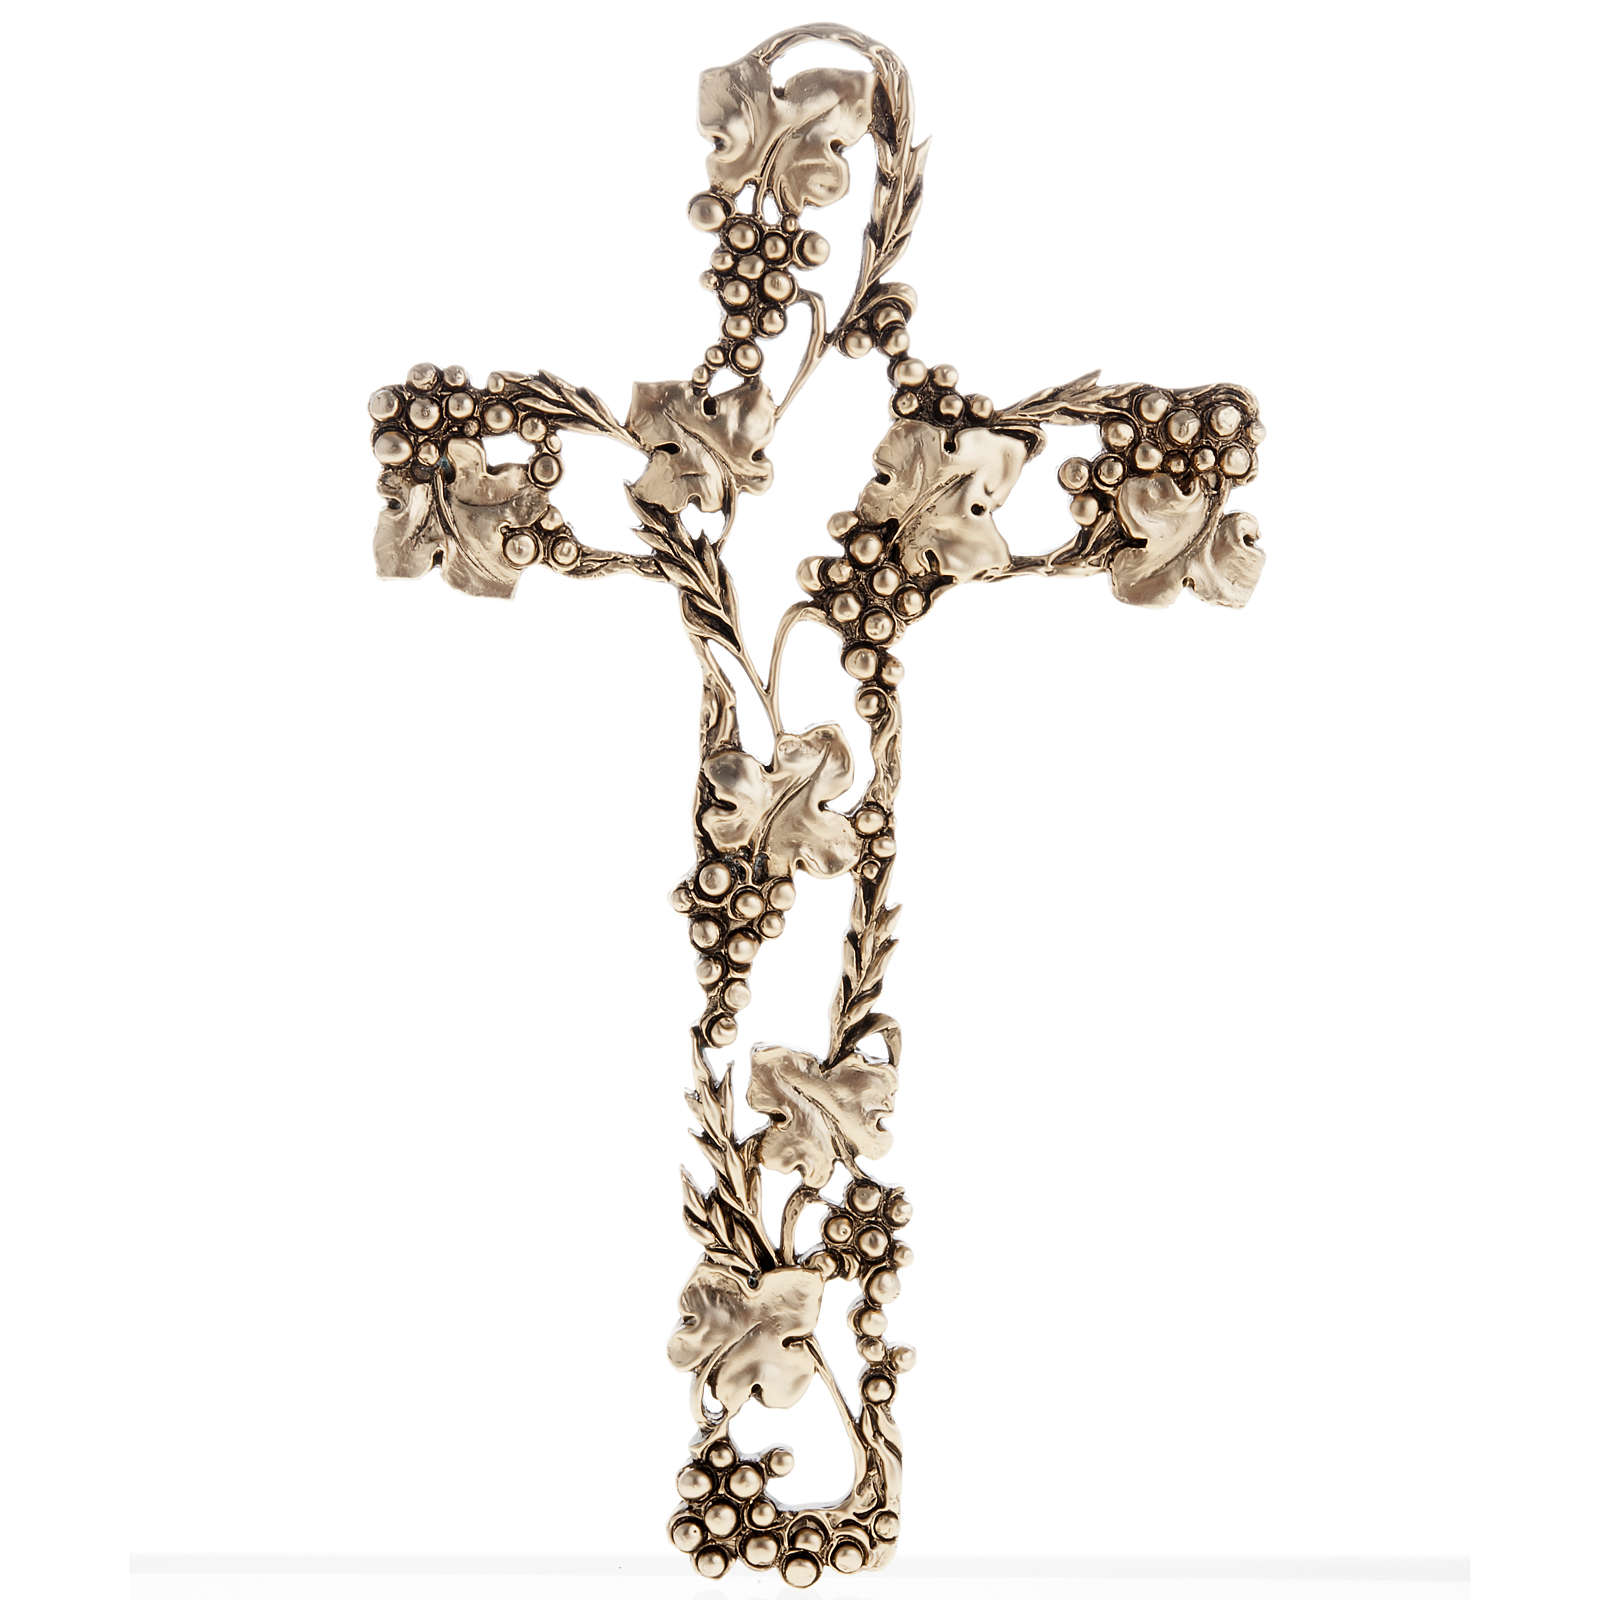 Grapes and Branches Cross in Golden-Colored Metal 4